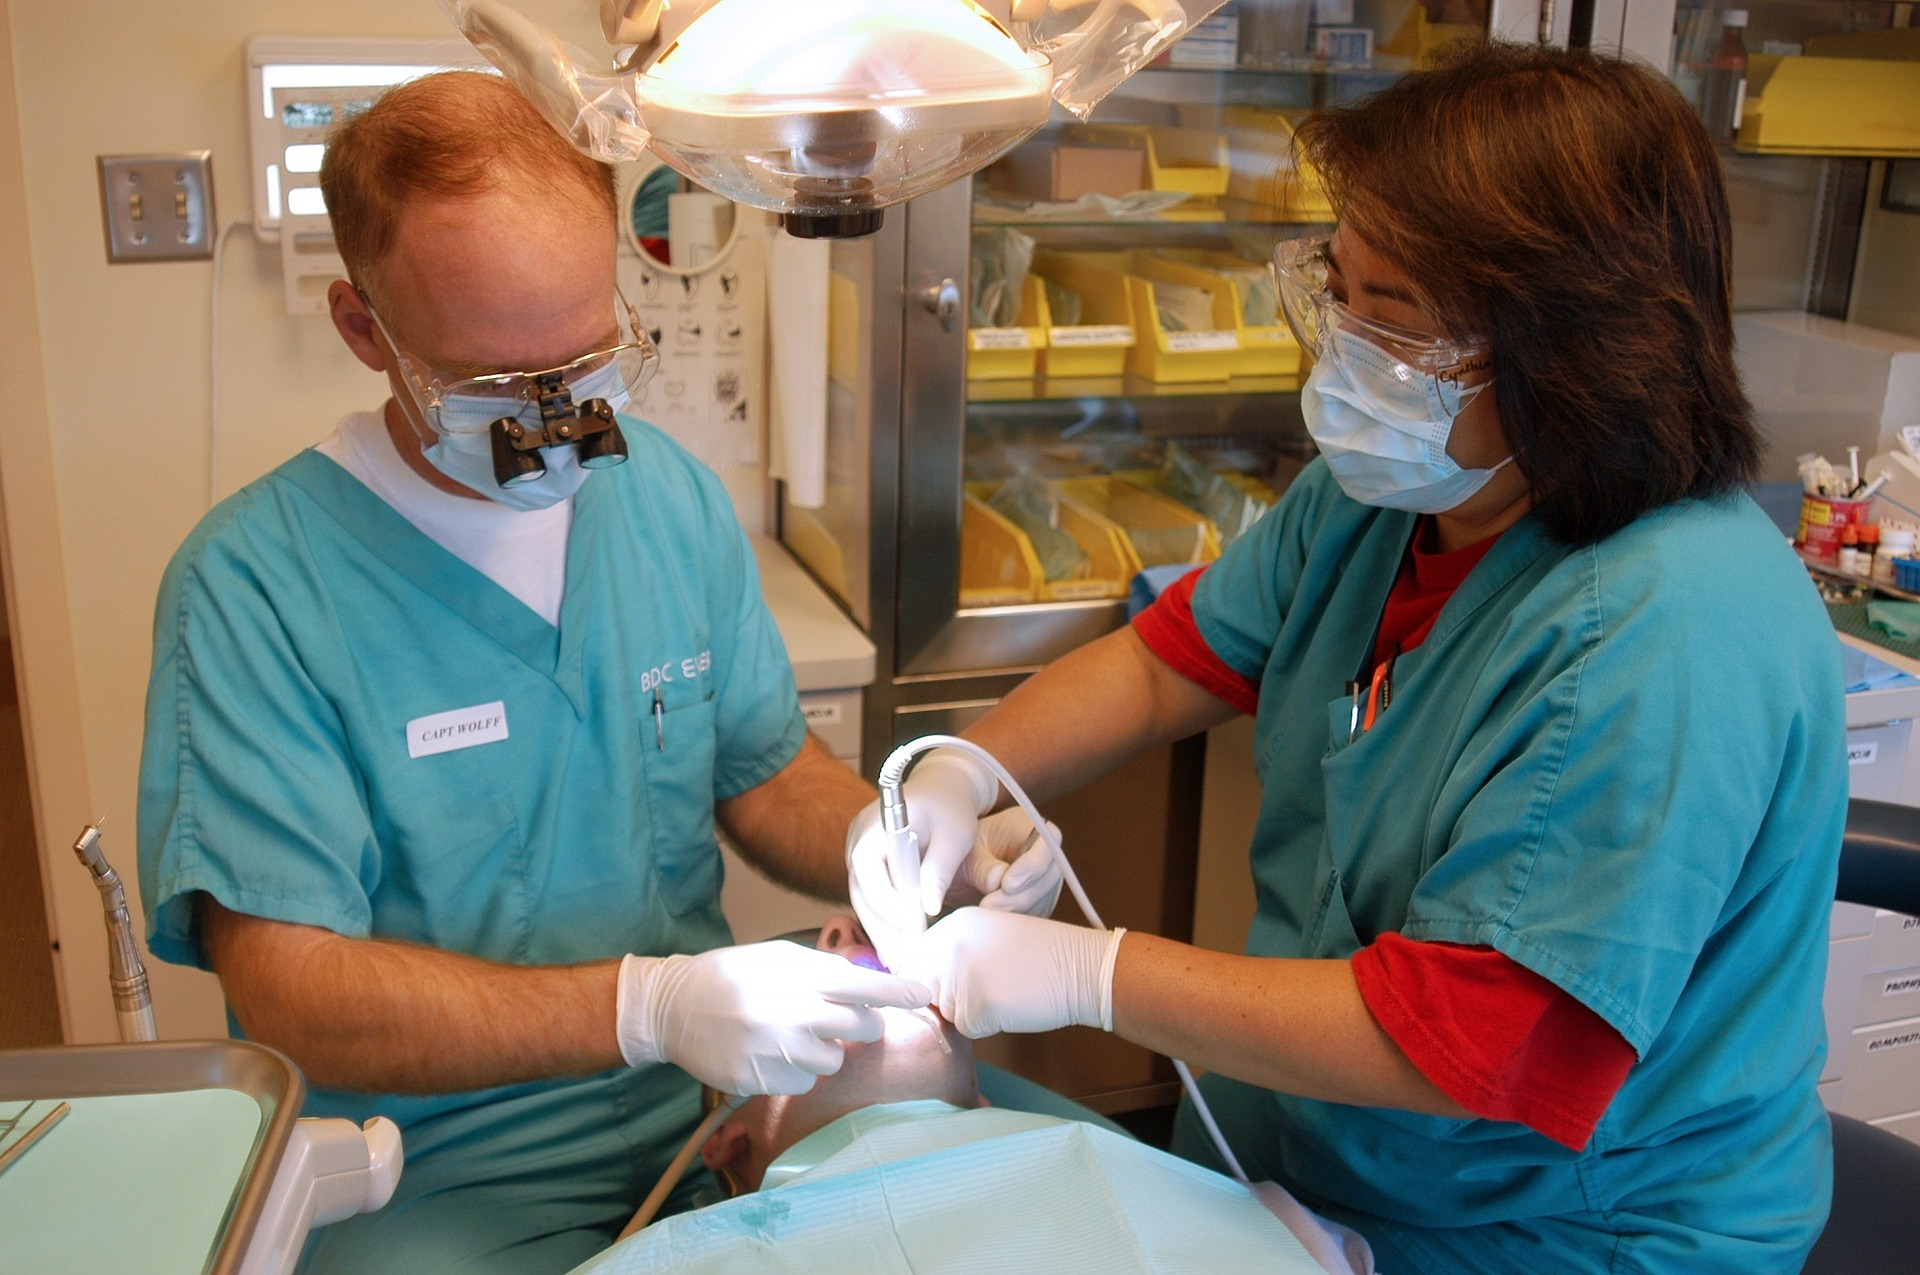 dental experts' teamwork